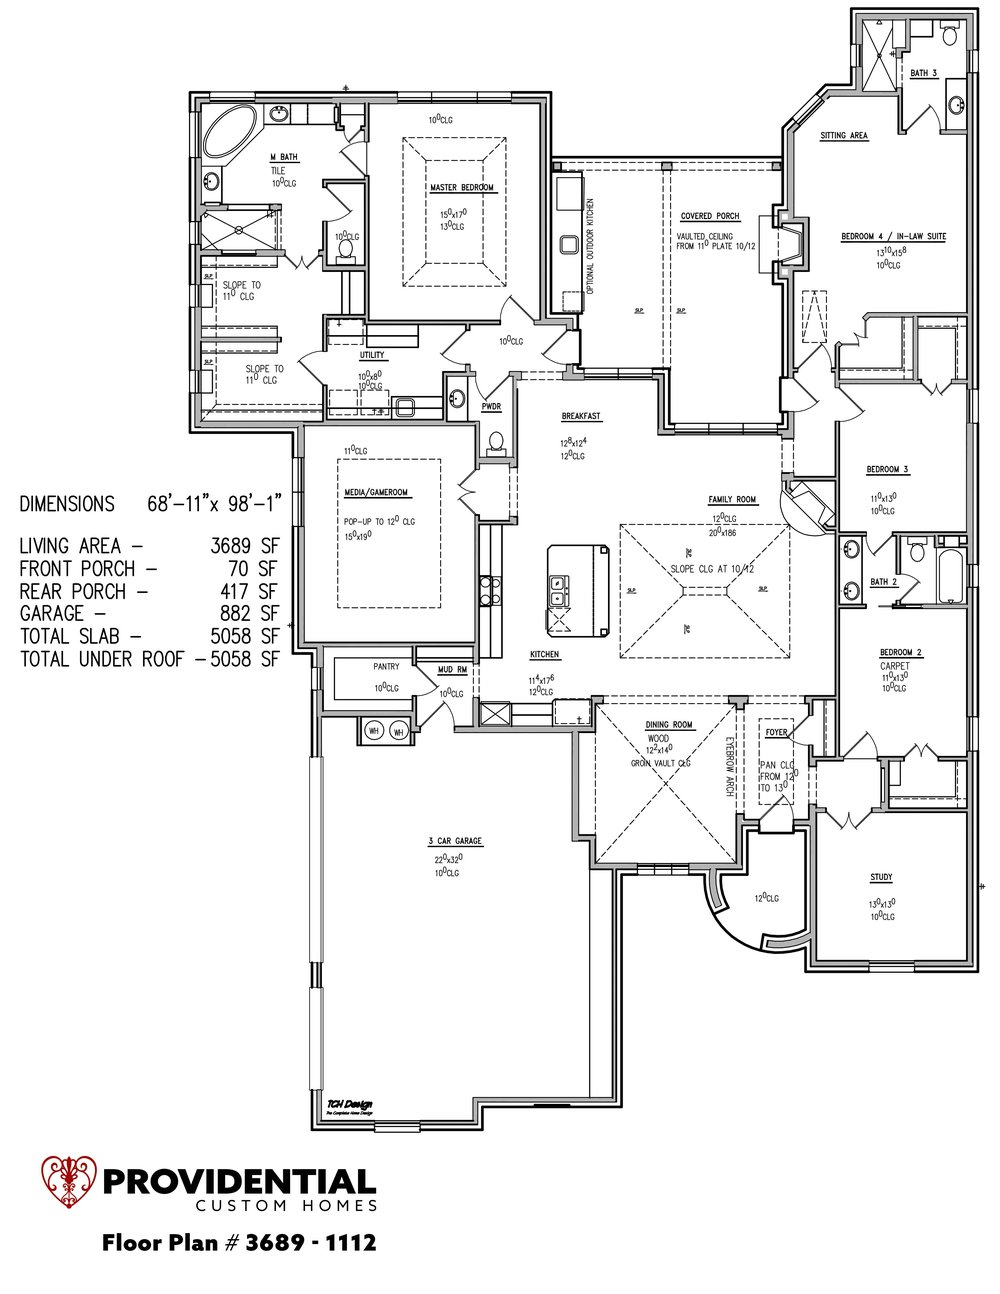 The FLOOR PLAN #3689 - 1112.jpg